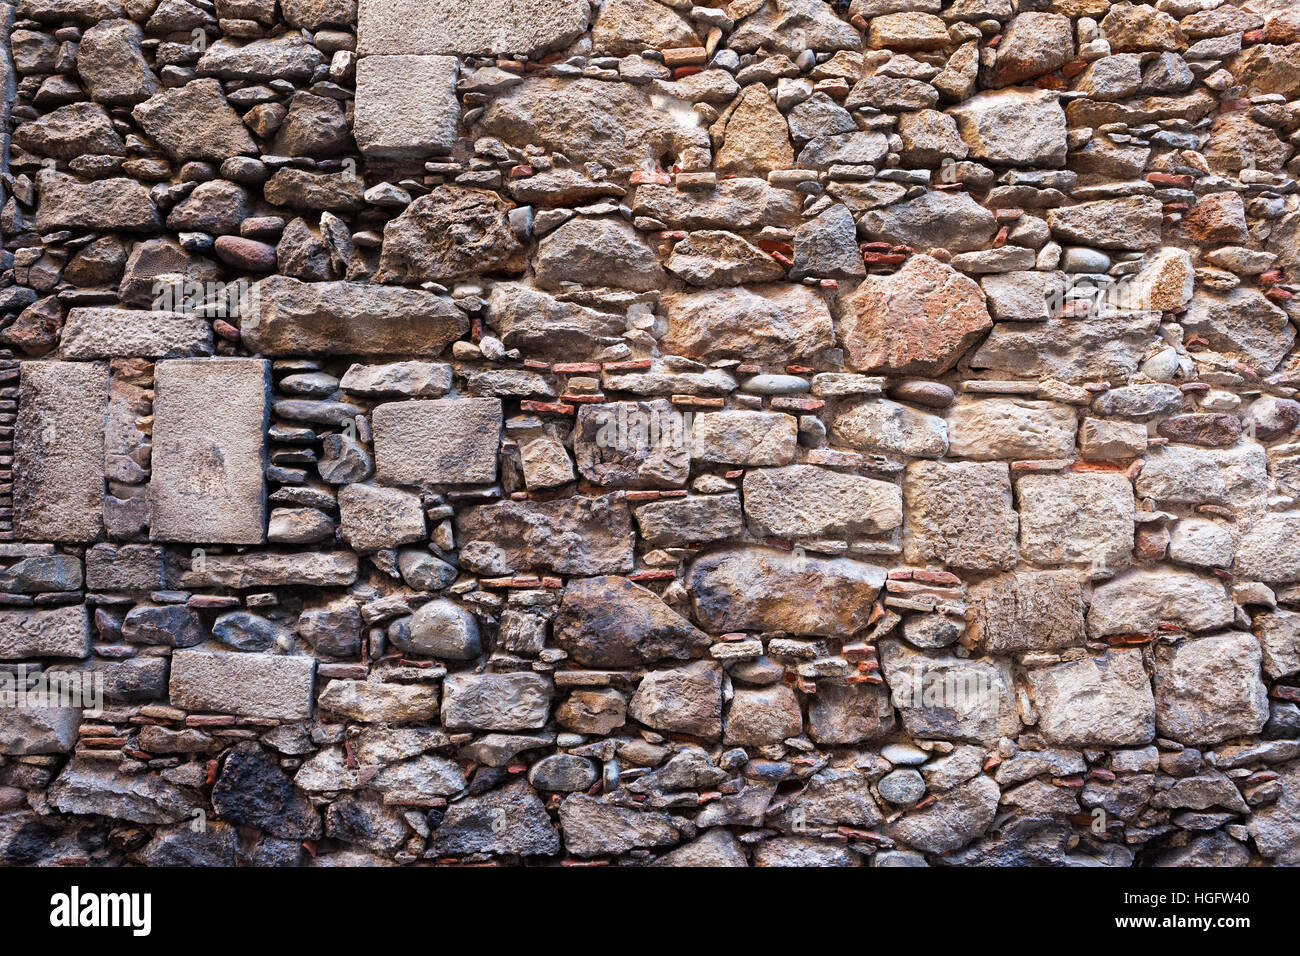 Medieval stone wall background or texture made with different sizes of rough cut stones and some bricks between, - Stock Image